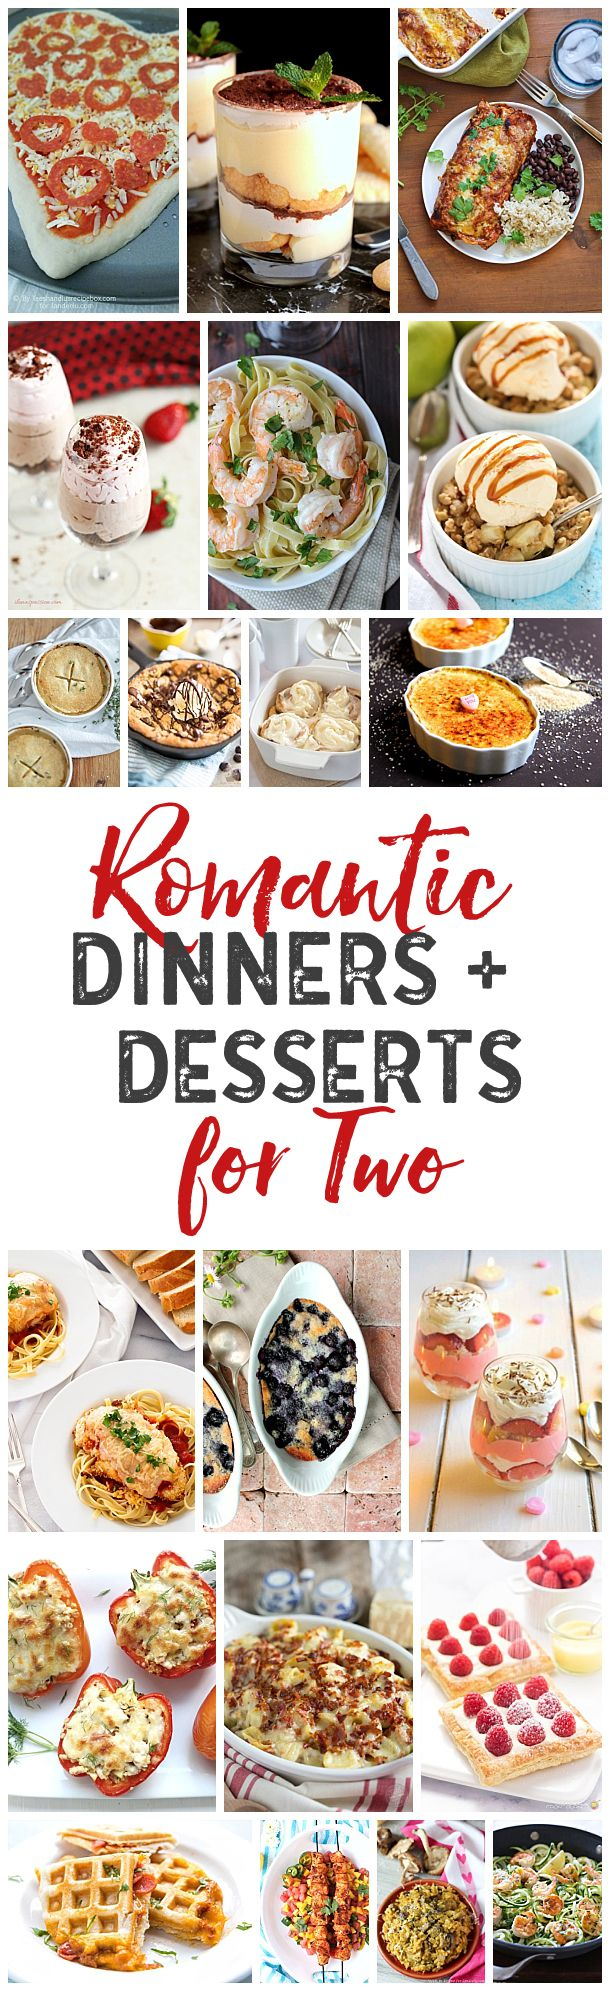 Lots of delicious dinner for two ideas for those special nights where you want to make a meal at home for your special someone. Plus dessert for two!